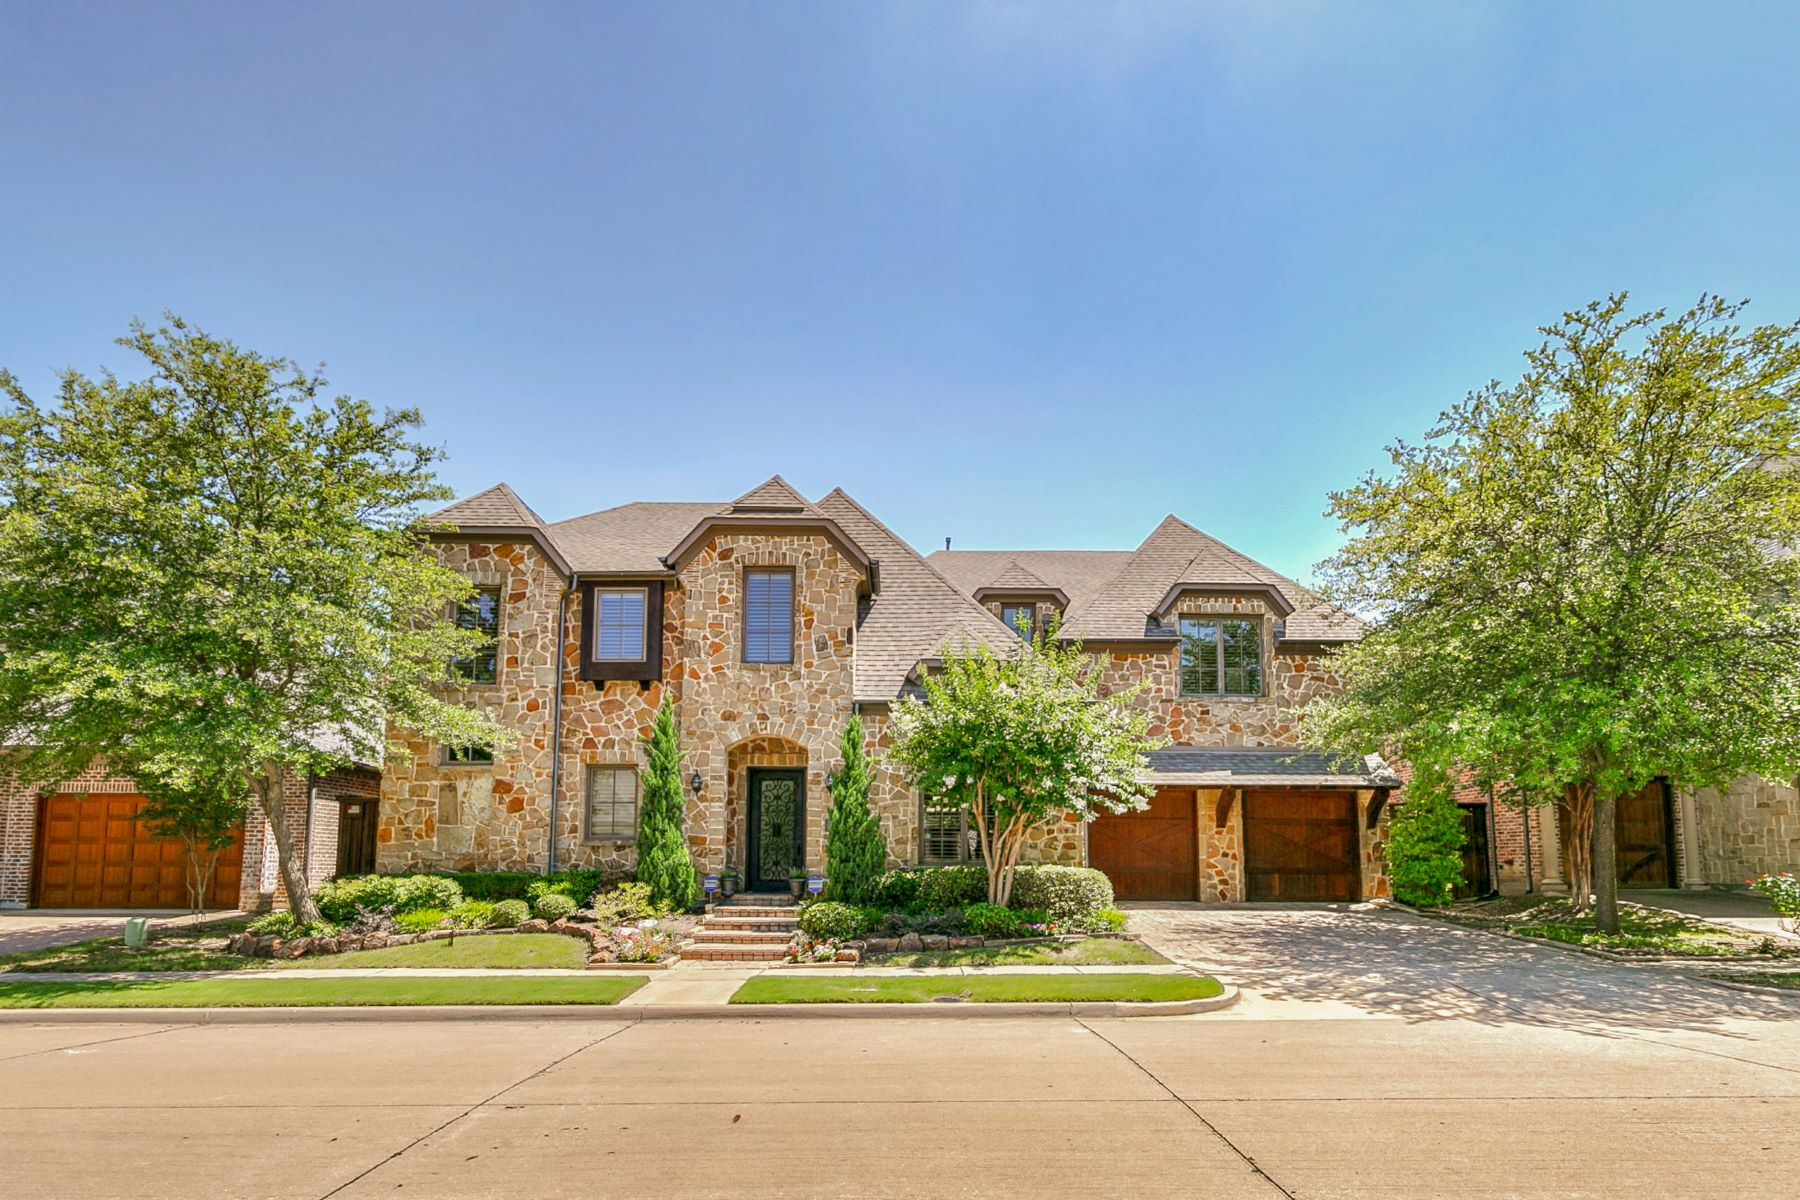 Single Family Homes for Sale at Two Master Bedrooms! 5744 Carrier Lane Plano, Texas 75024 United States